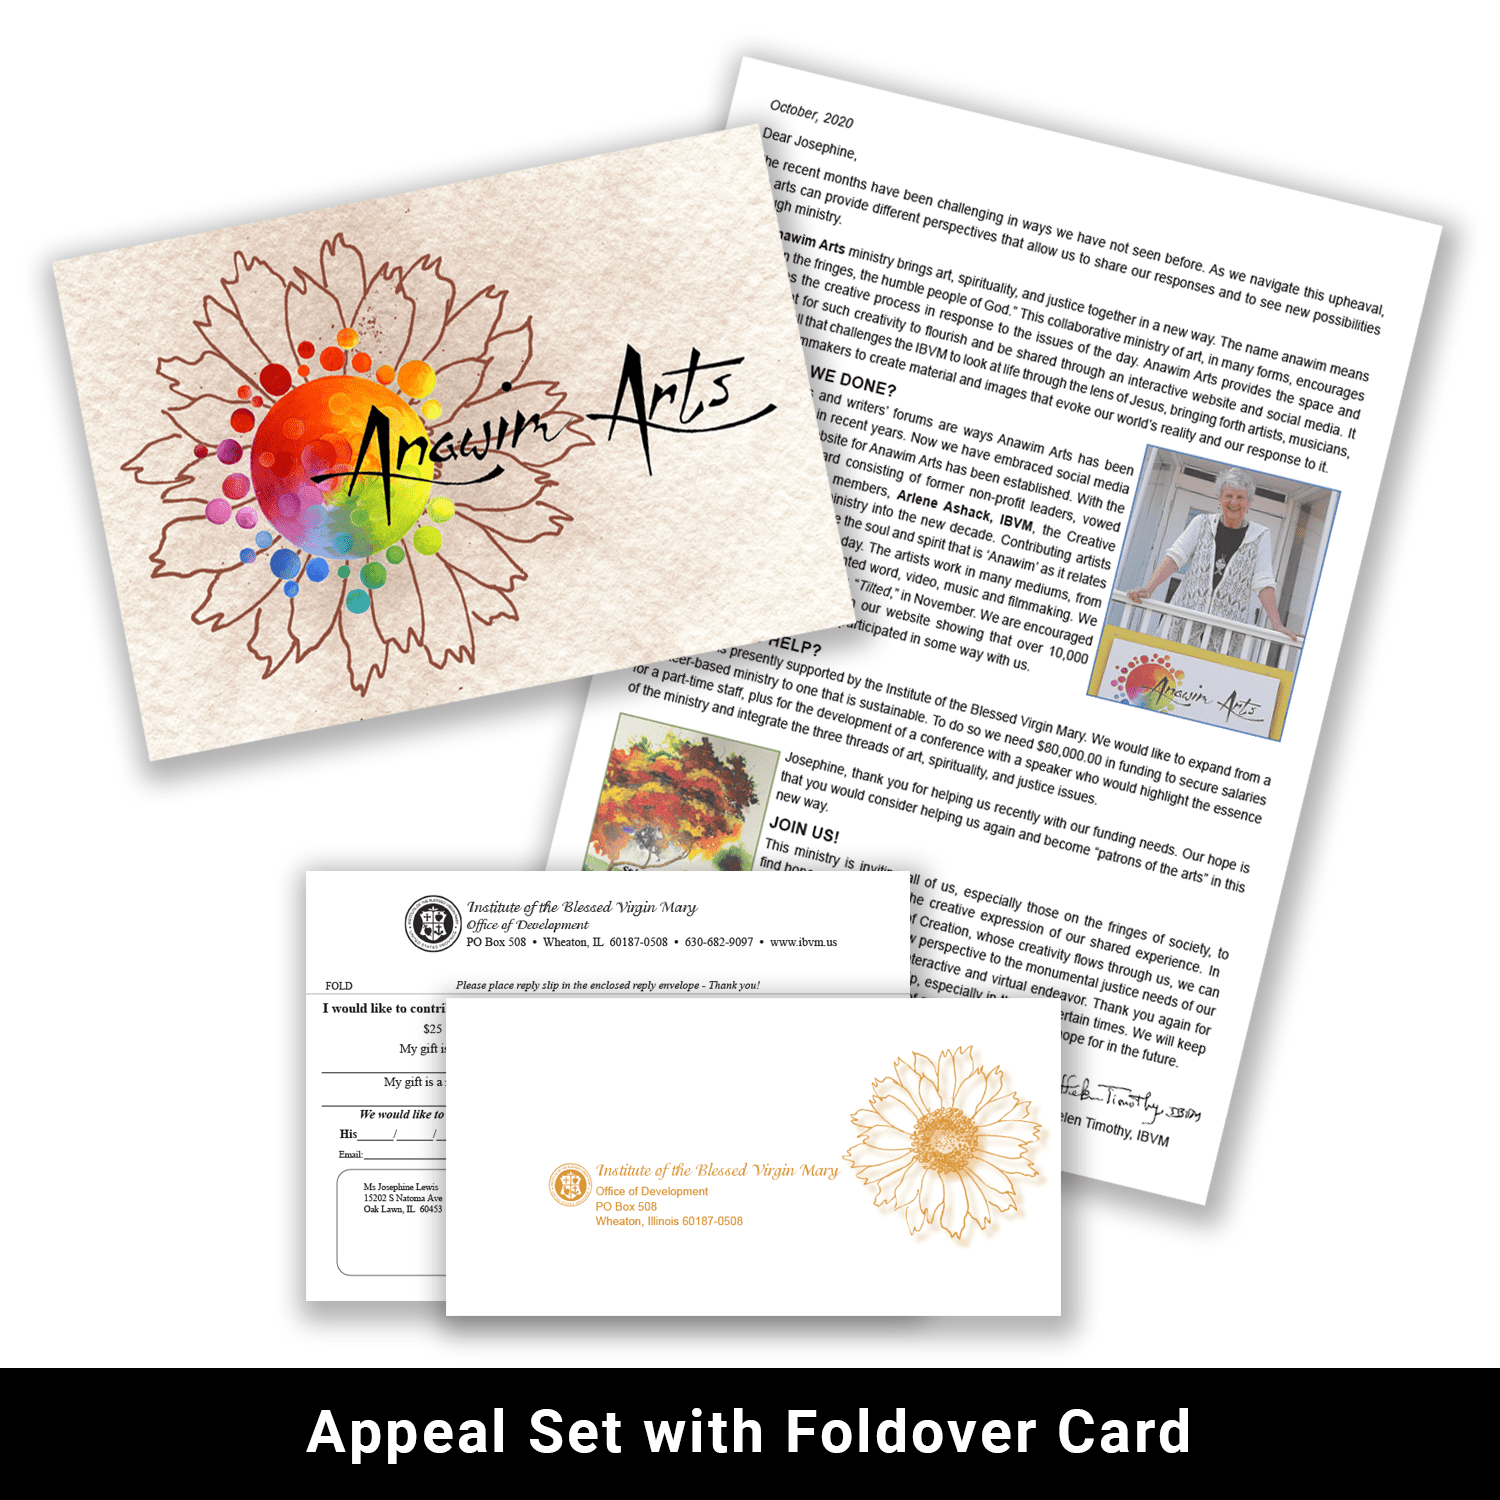 Print appeal set with foldover card example